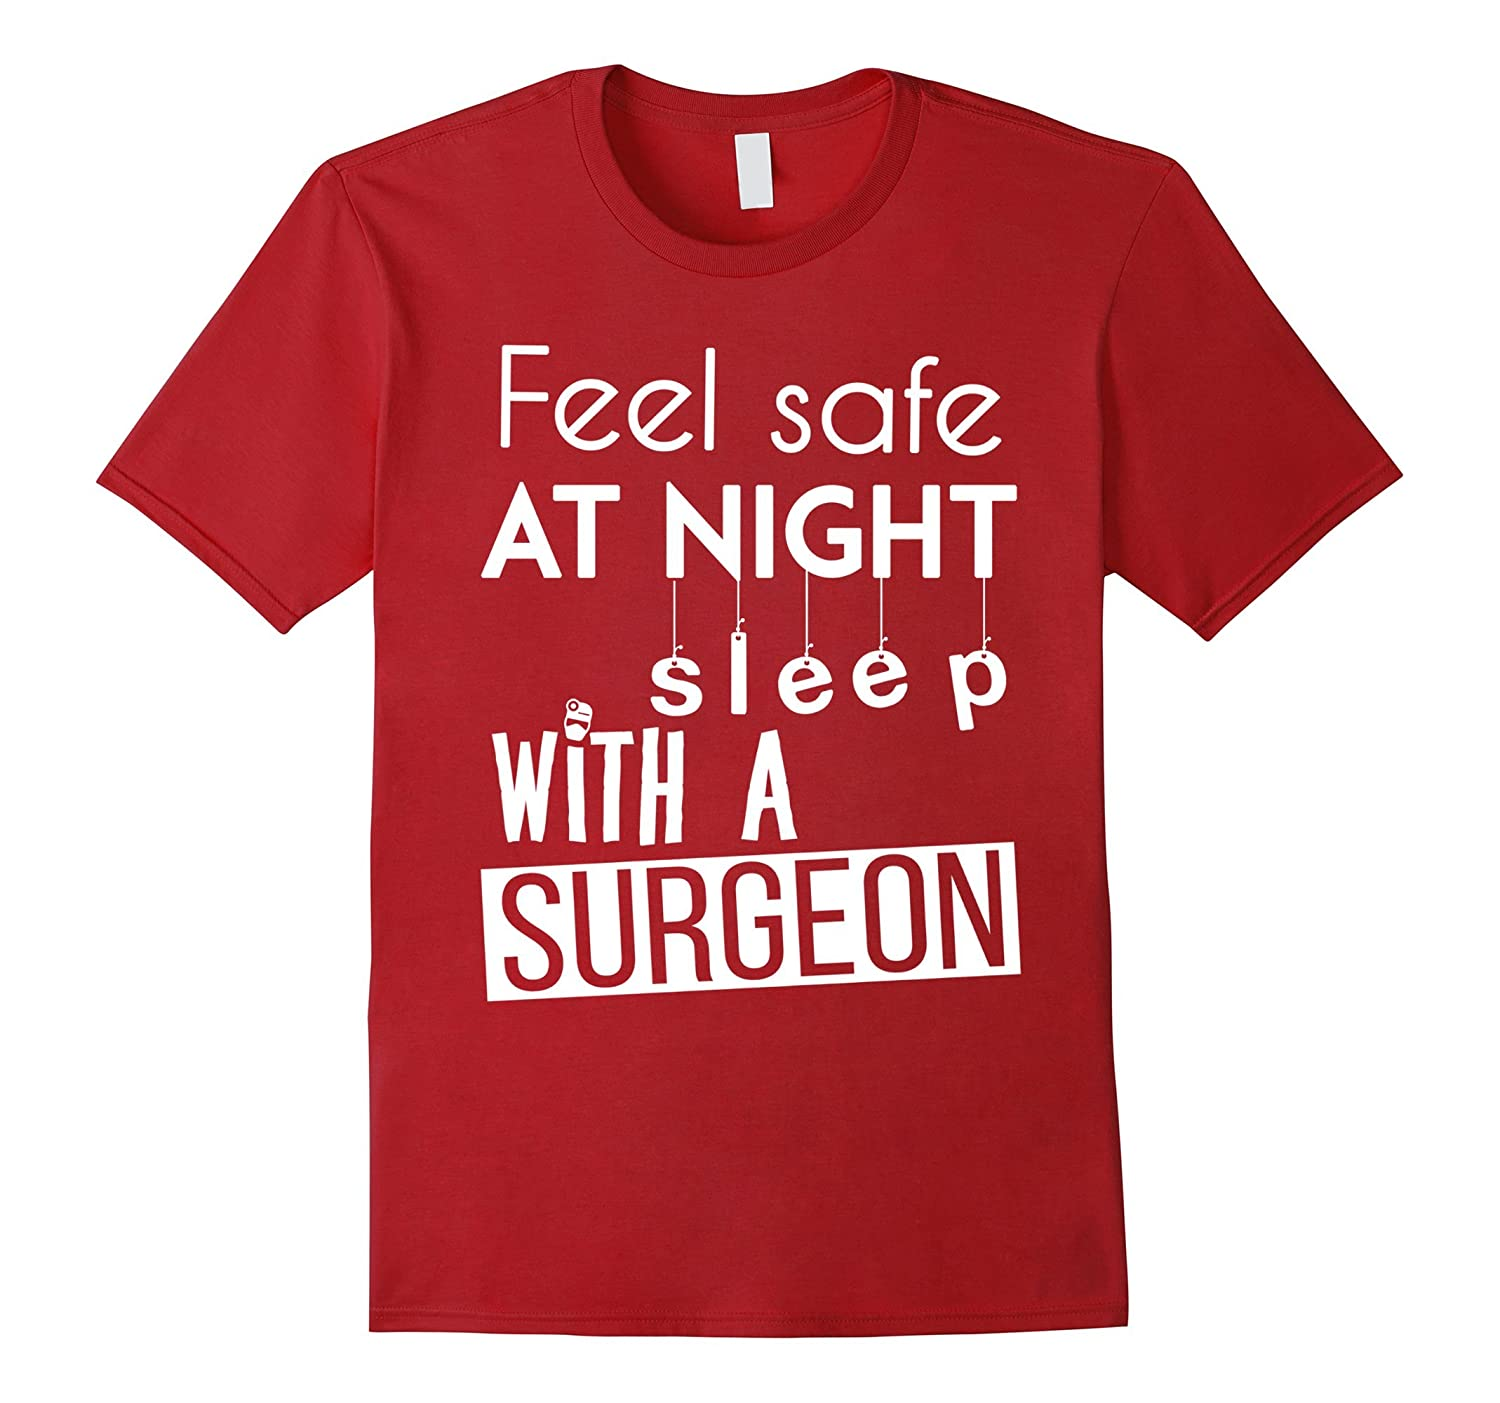 Surgeon T-shirt - Feel safe at night sleep with a Surgeon-TD